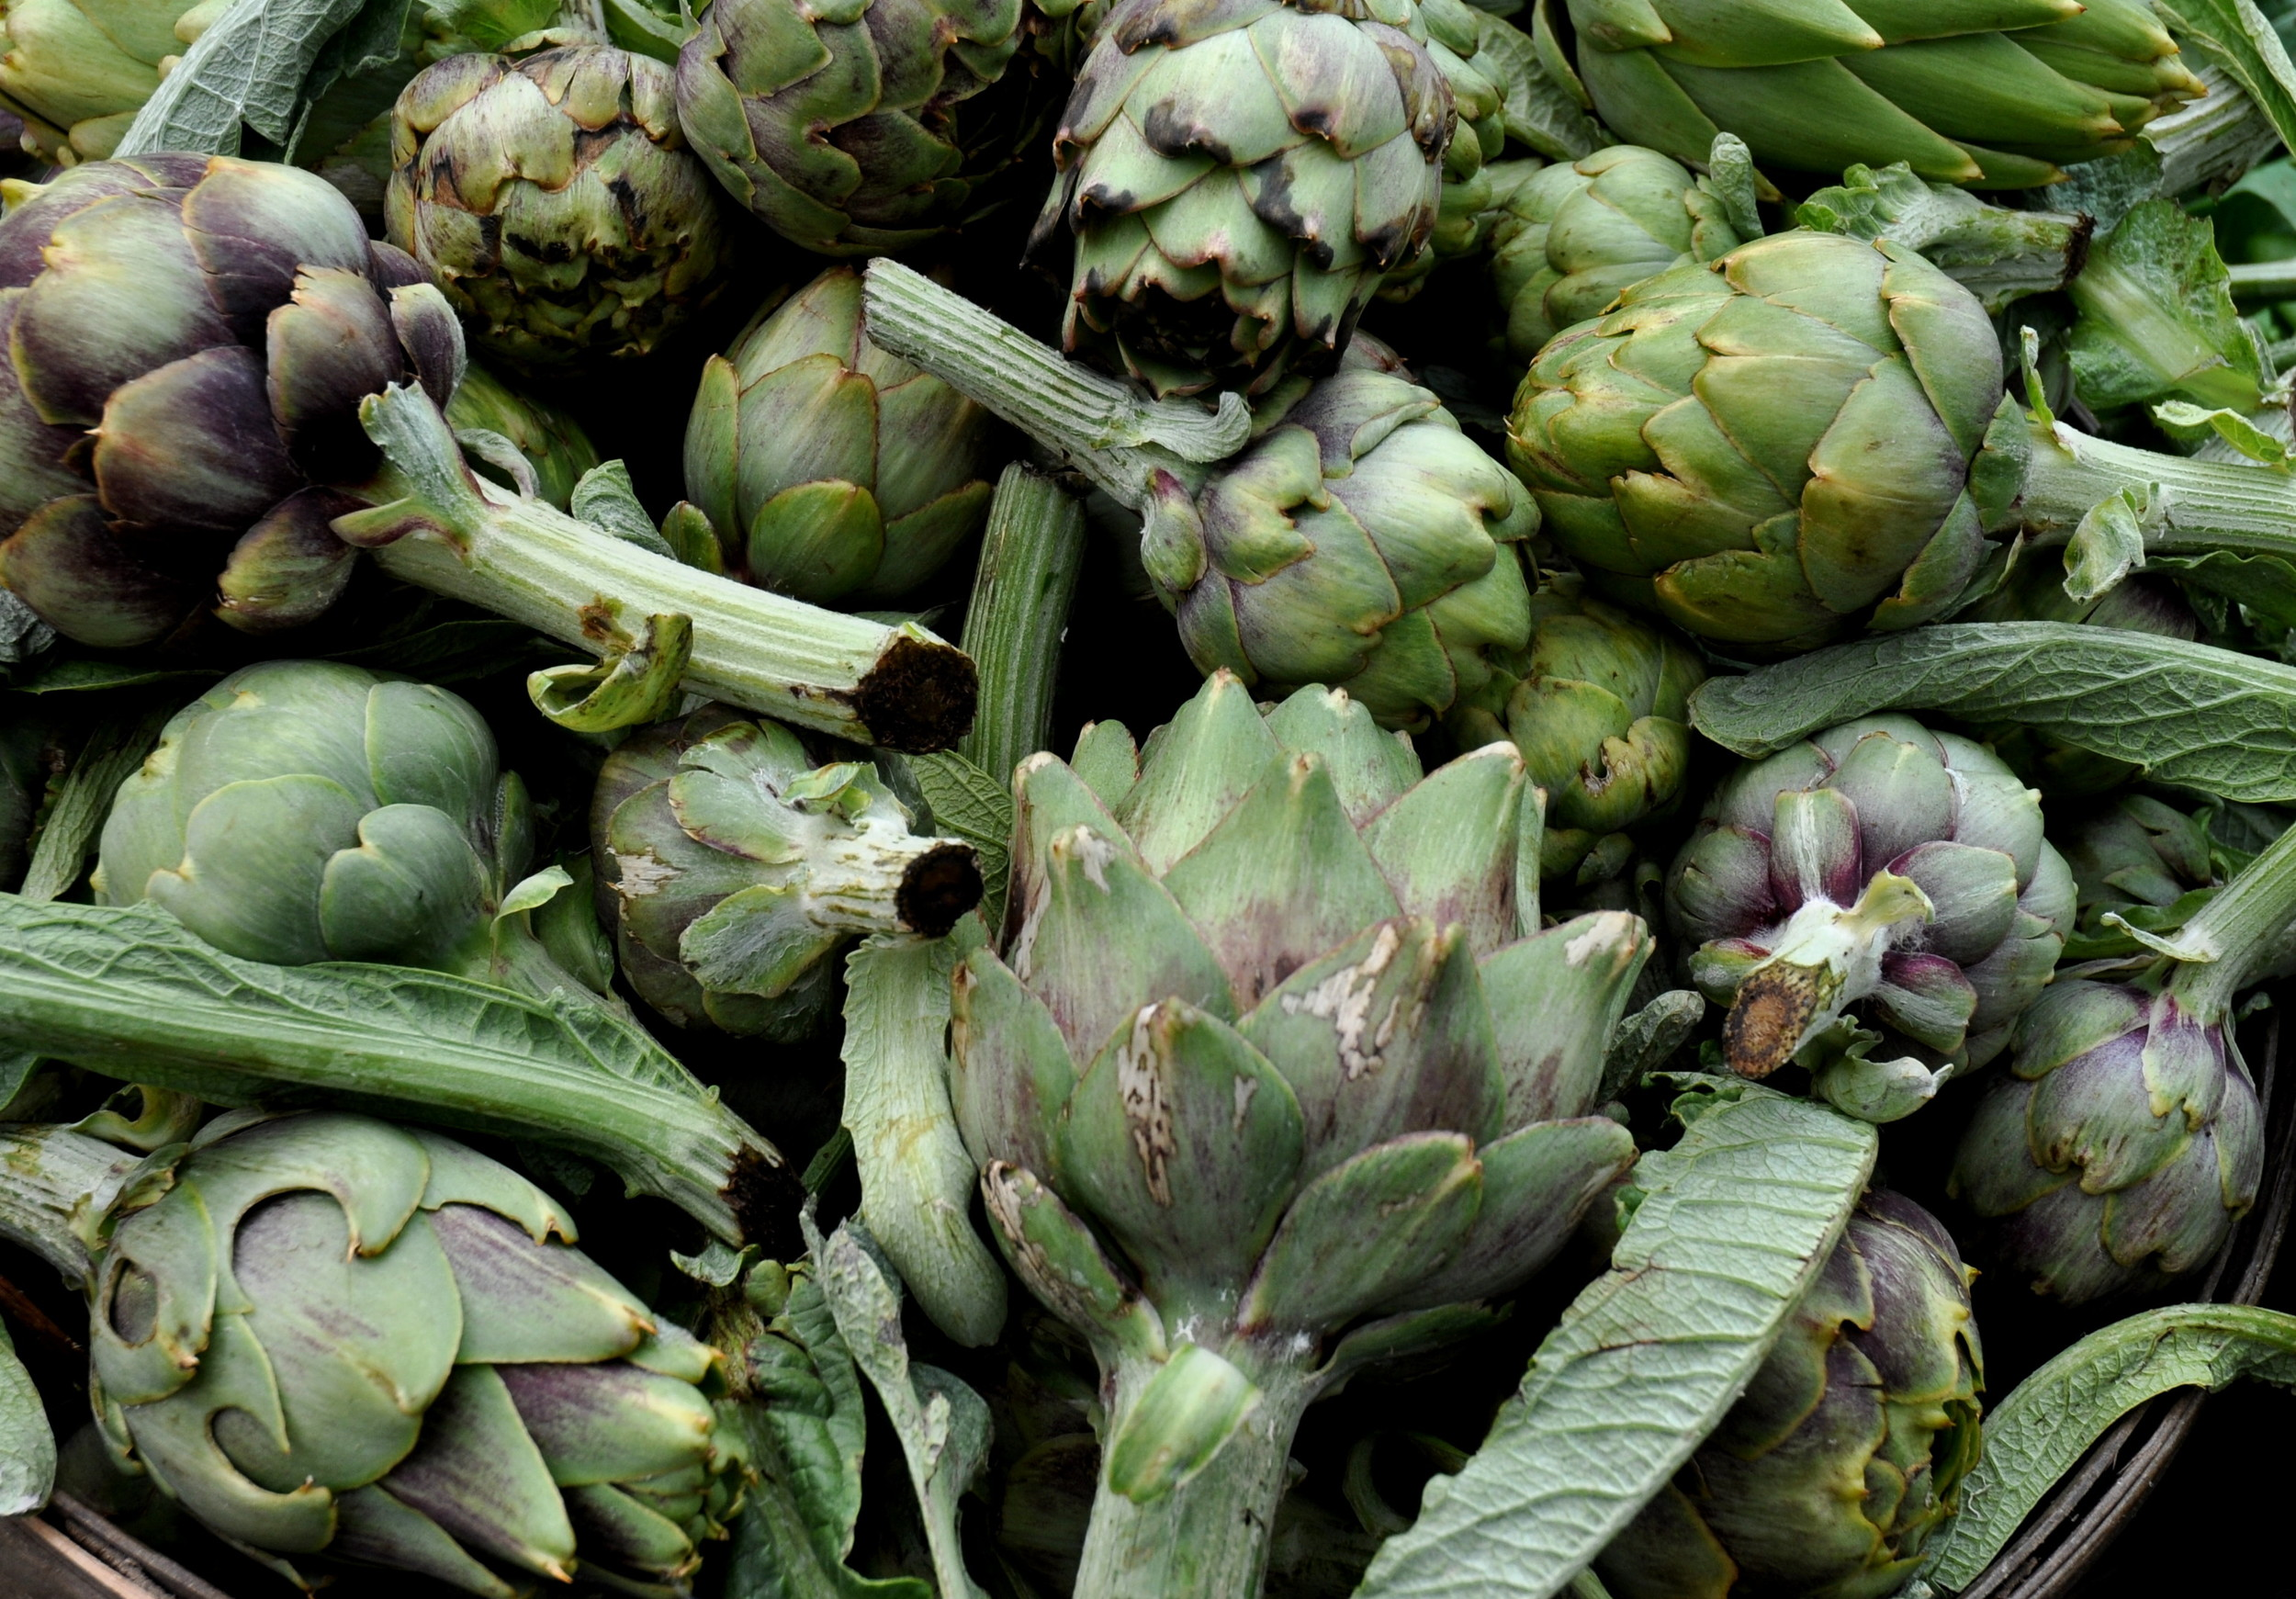 Artichokes from Nash's Organic Produce. Photo copyright 2013 by Zachary D. Lyons.